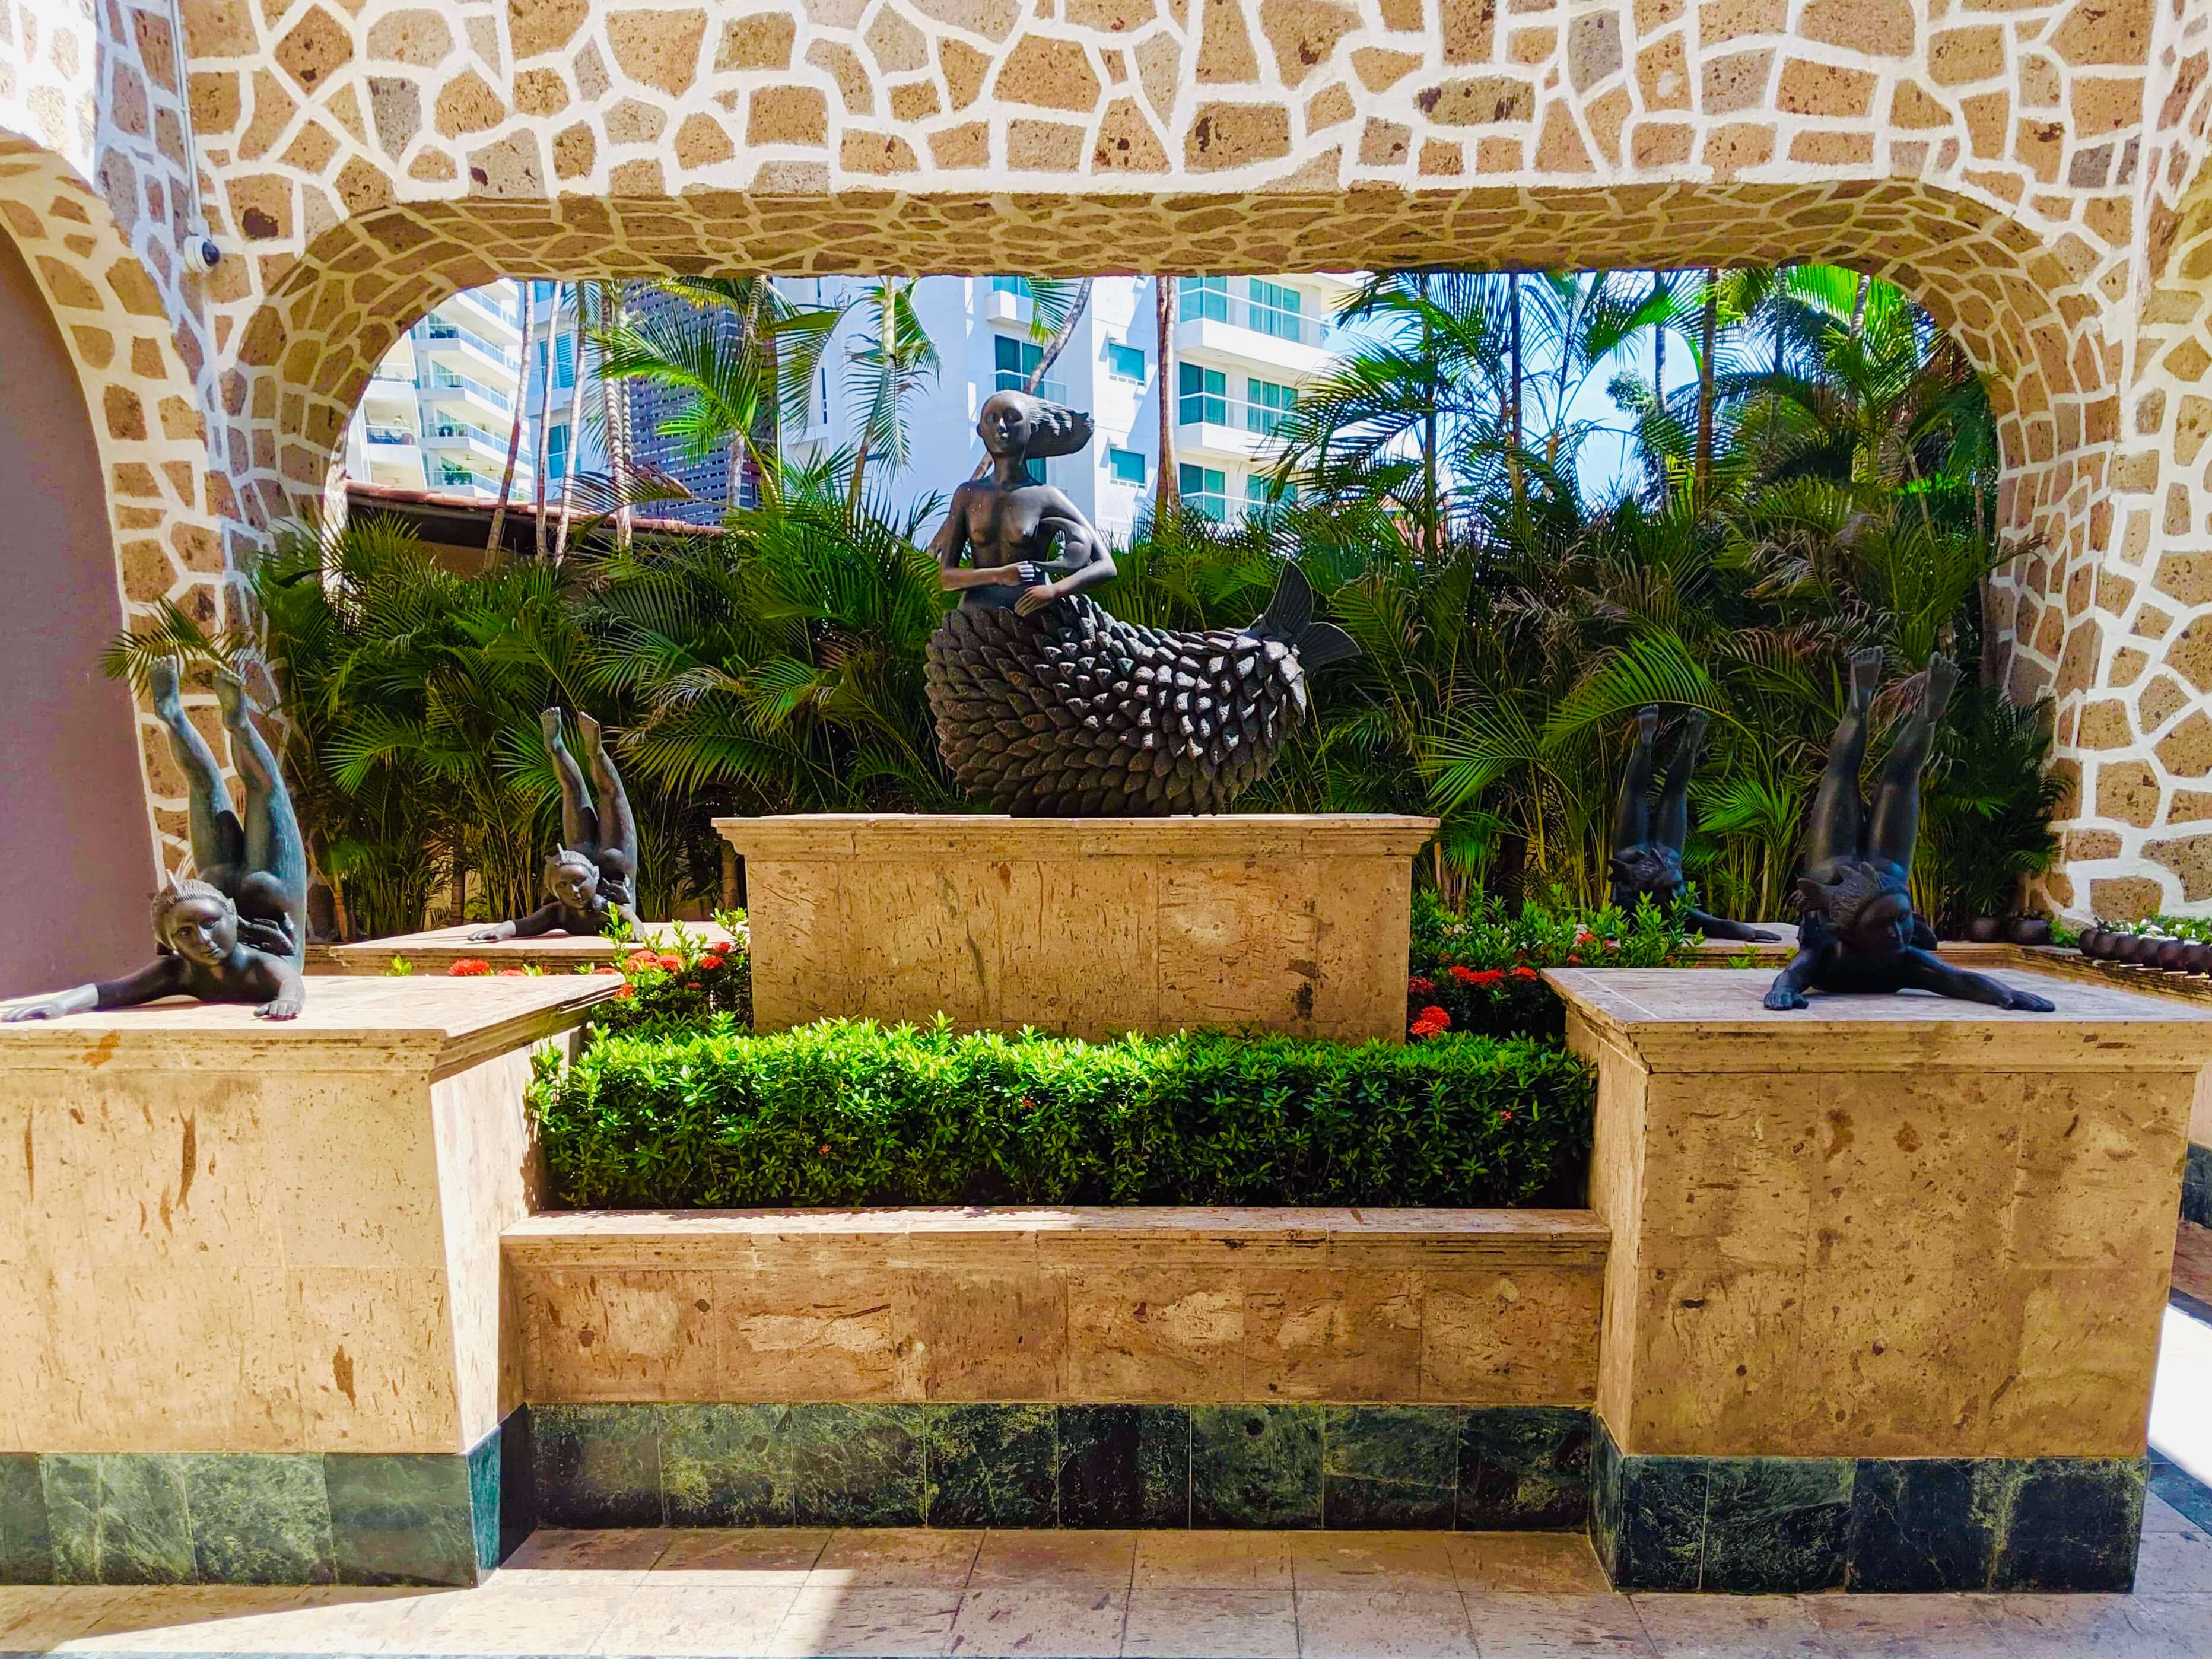 A statue in the hotel lobby